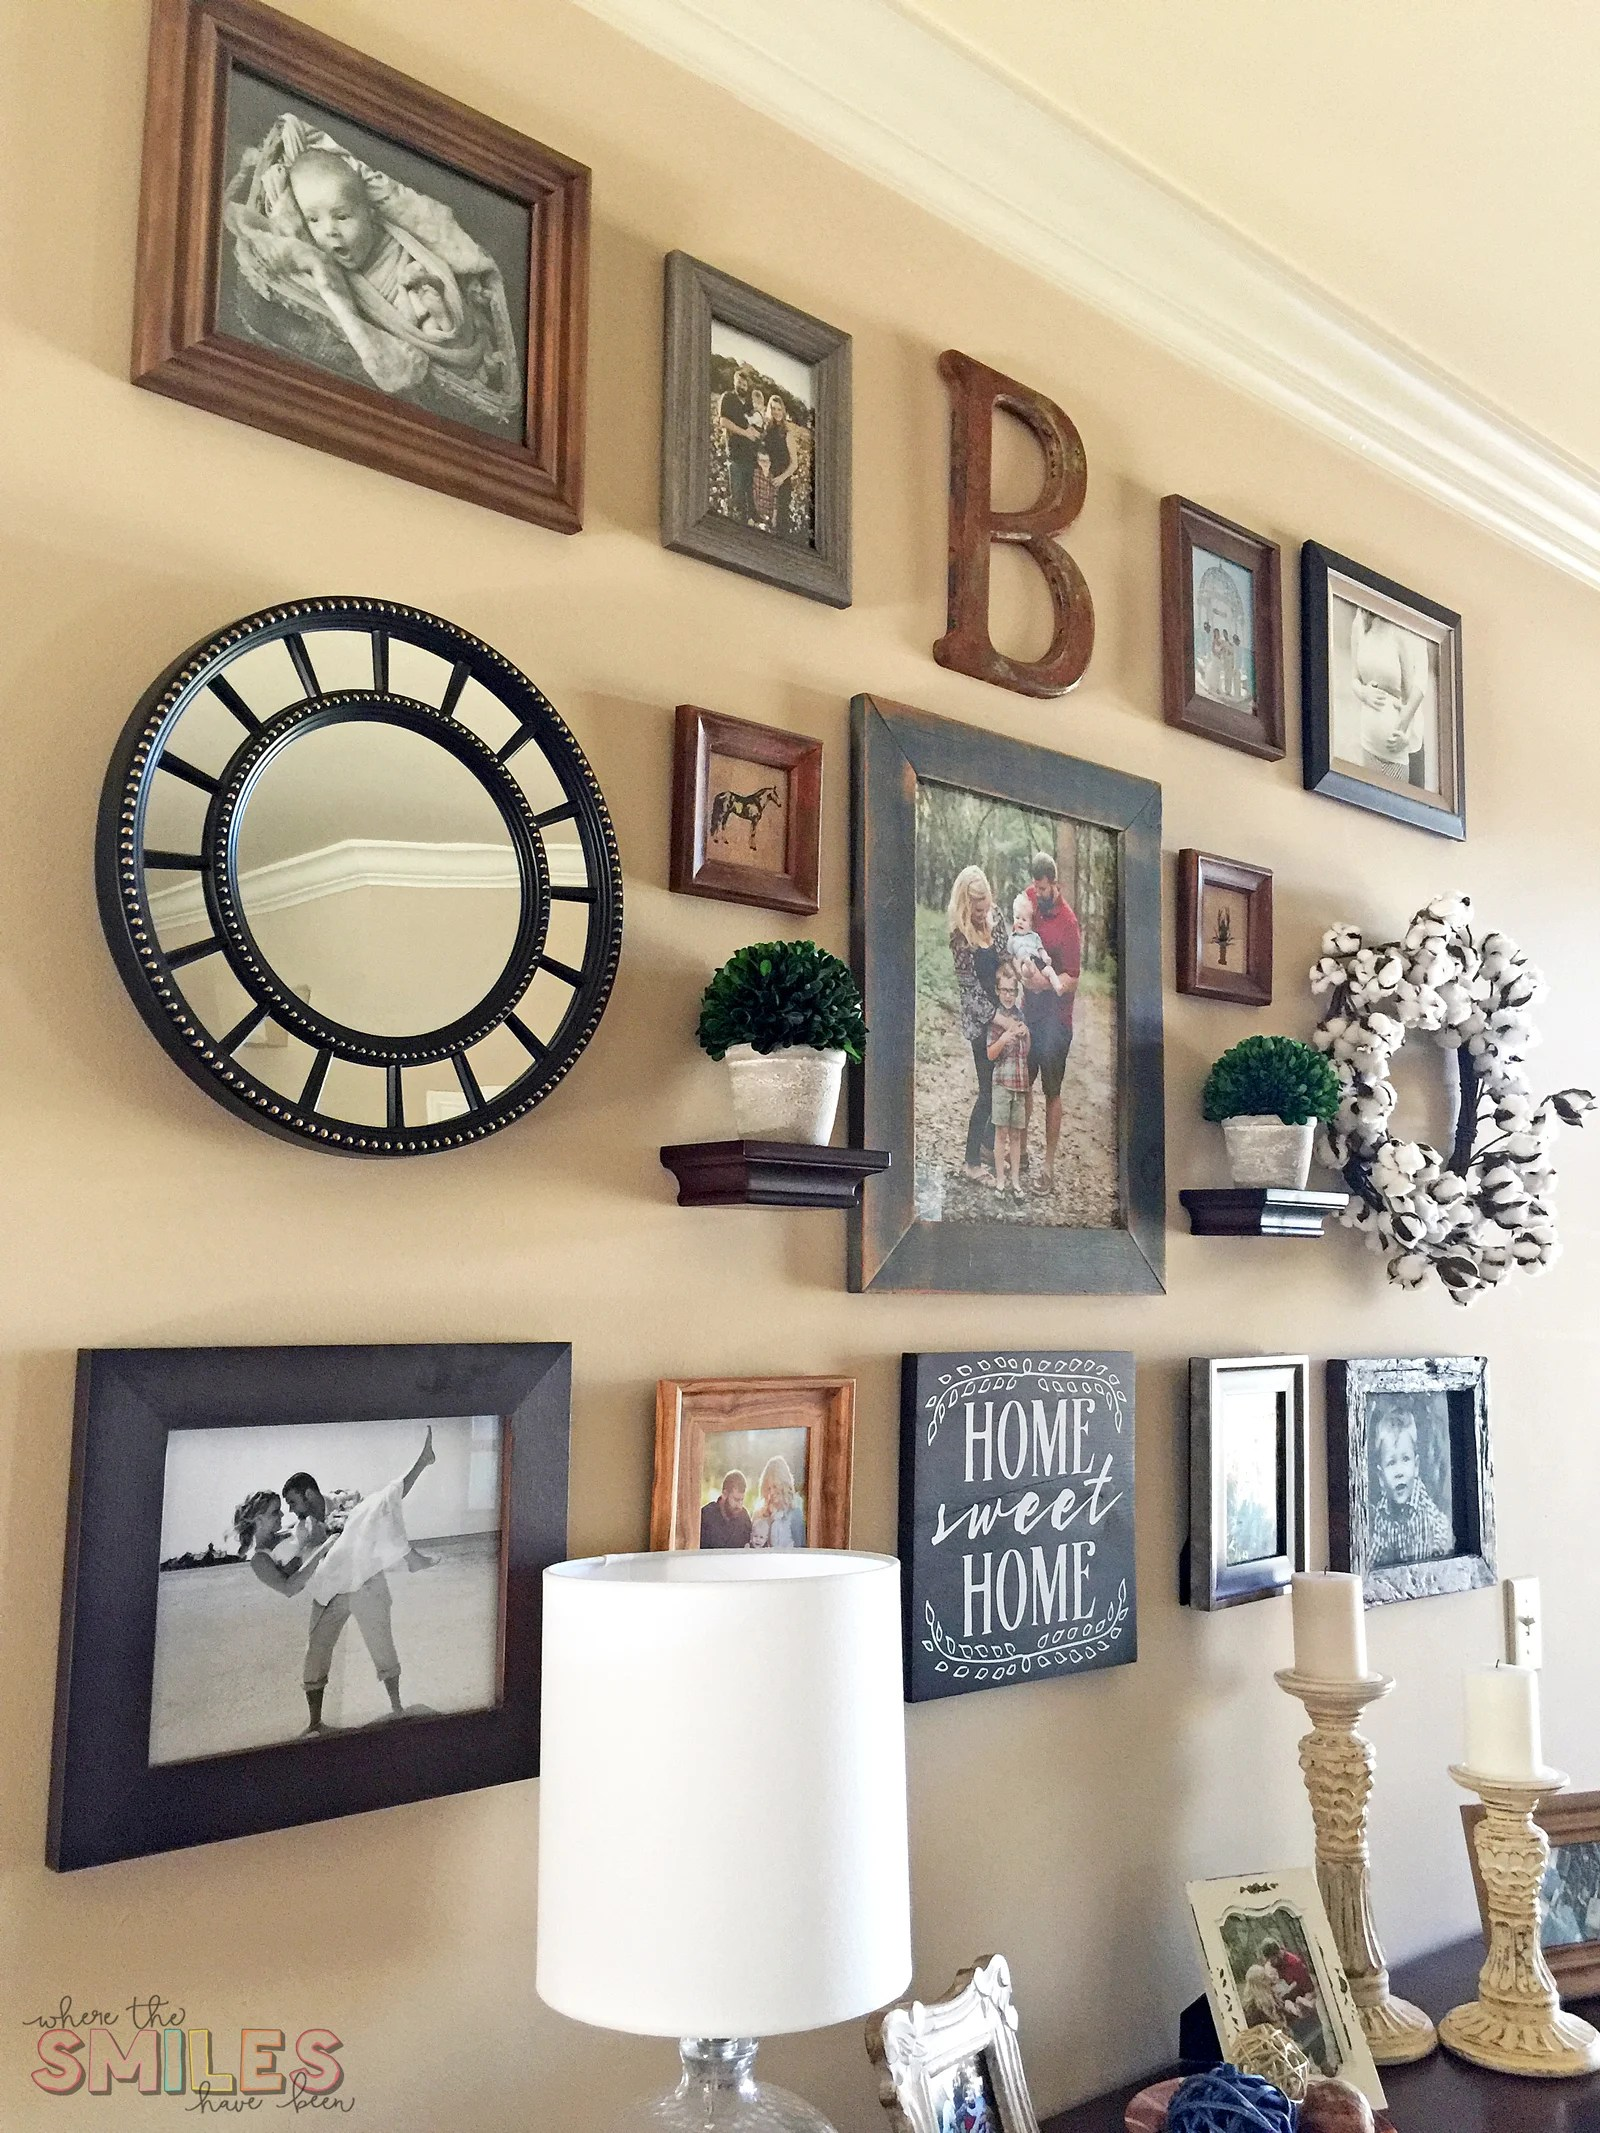 Modern Farmhouse Gallery Wall Reveal | Where The Smiles Have Been #farmhouse #modernfarmhouse #gallerywall #wallart